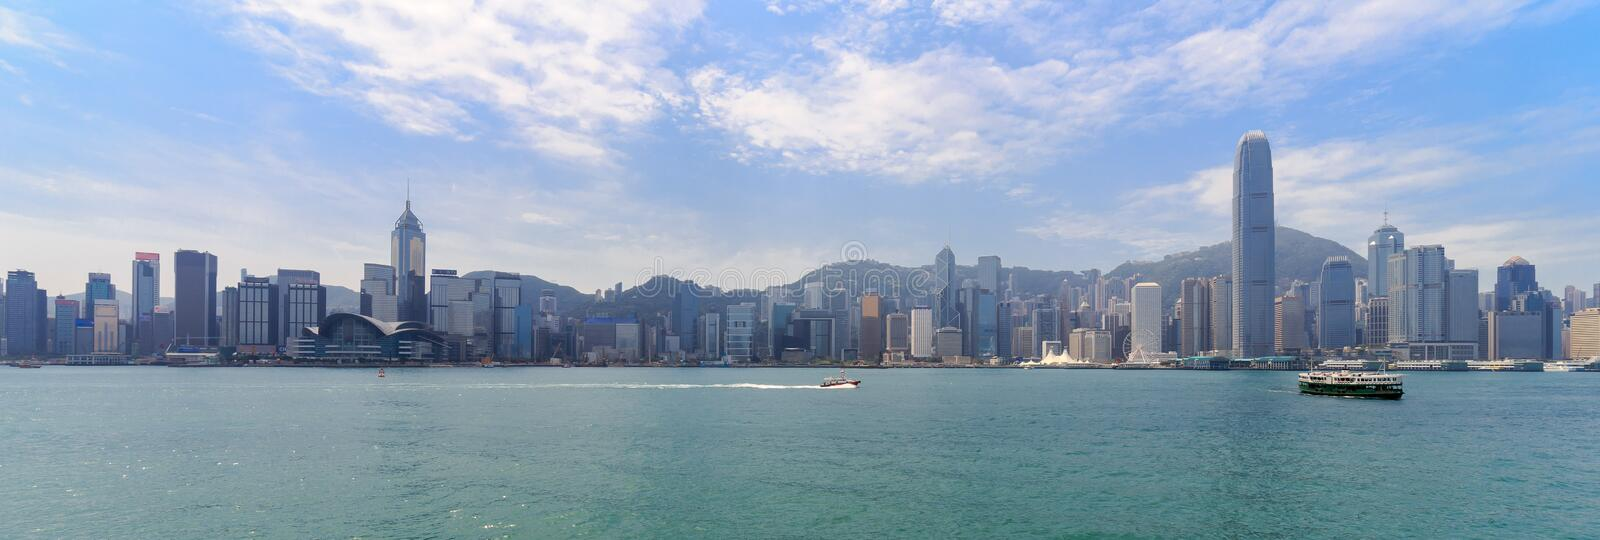 Horizon de Kowloon image stock